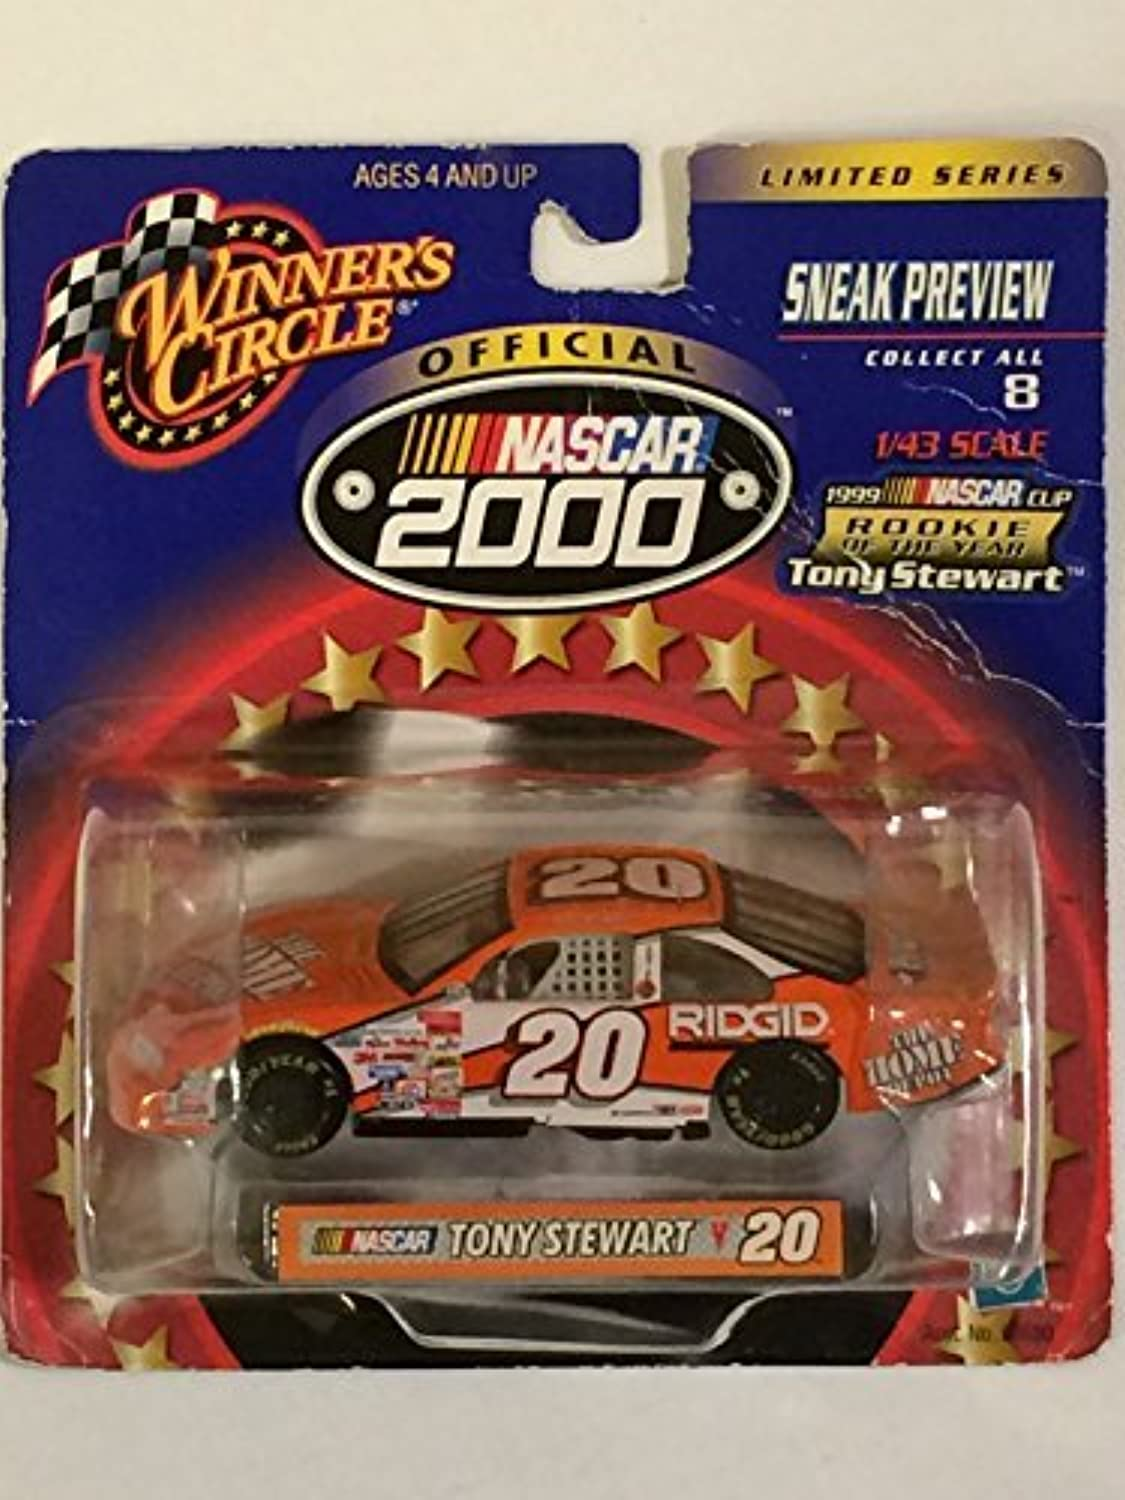 Winner's Circle - NASCAR 2000 - Sneak Preview Limited Series - Tony Stewart Home Depot - Pontiac Grand Prix  20 (orange) - 1999 NASCAR Cup Rookie of the Year - 1 43 Scale Replica